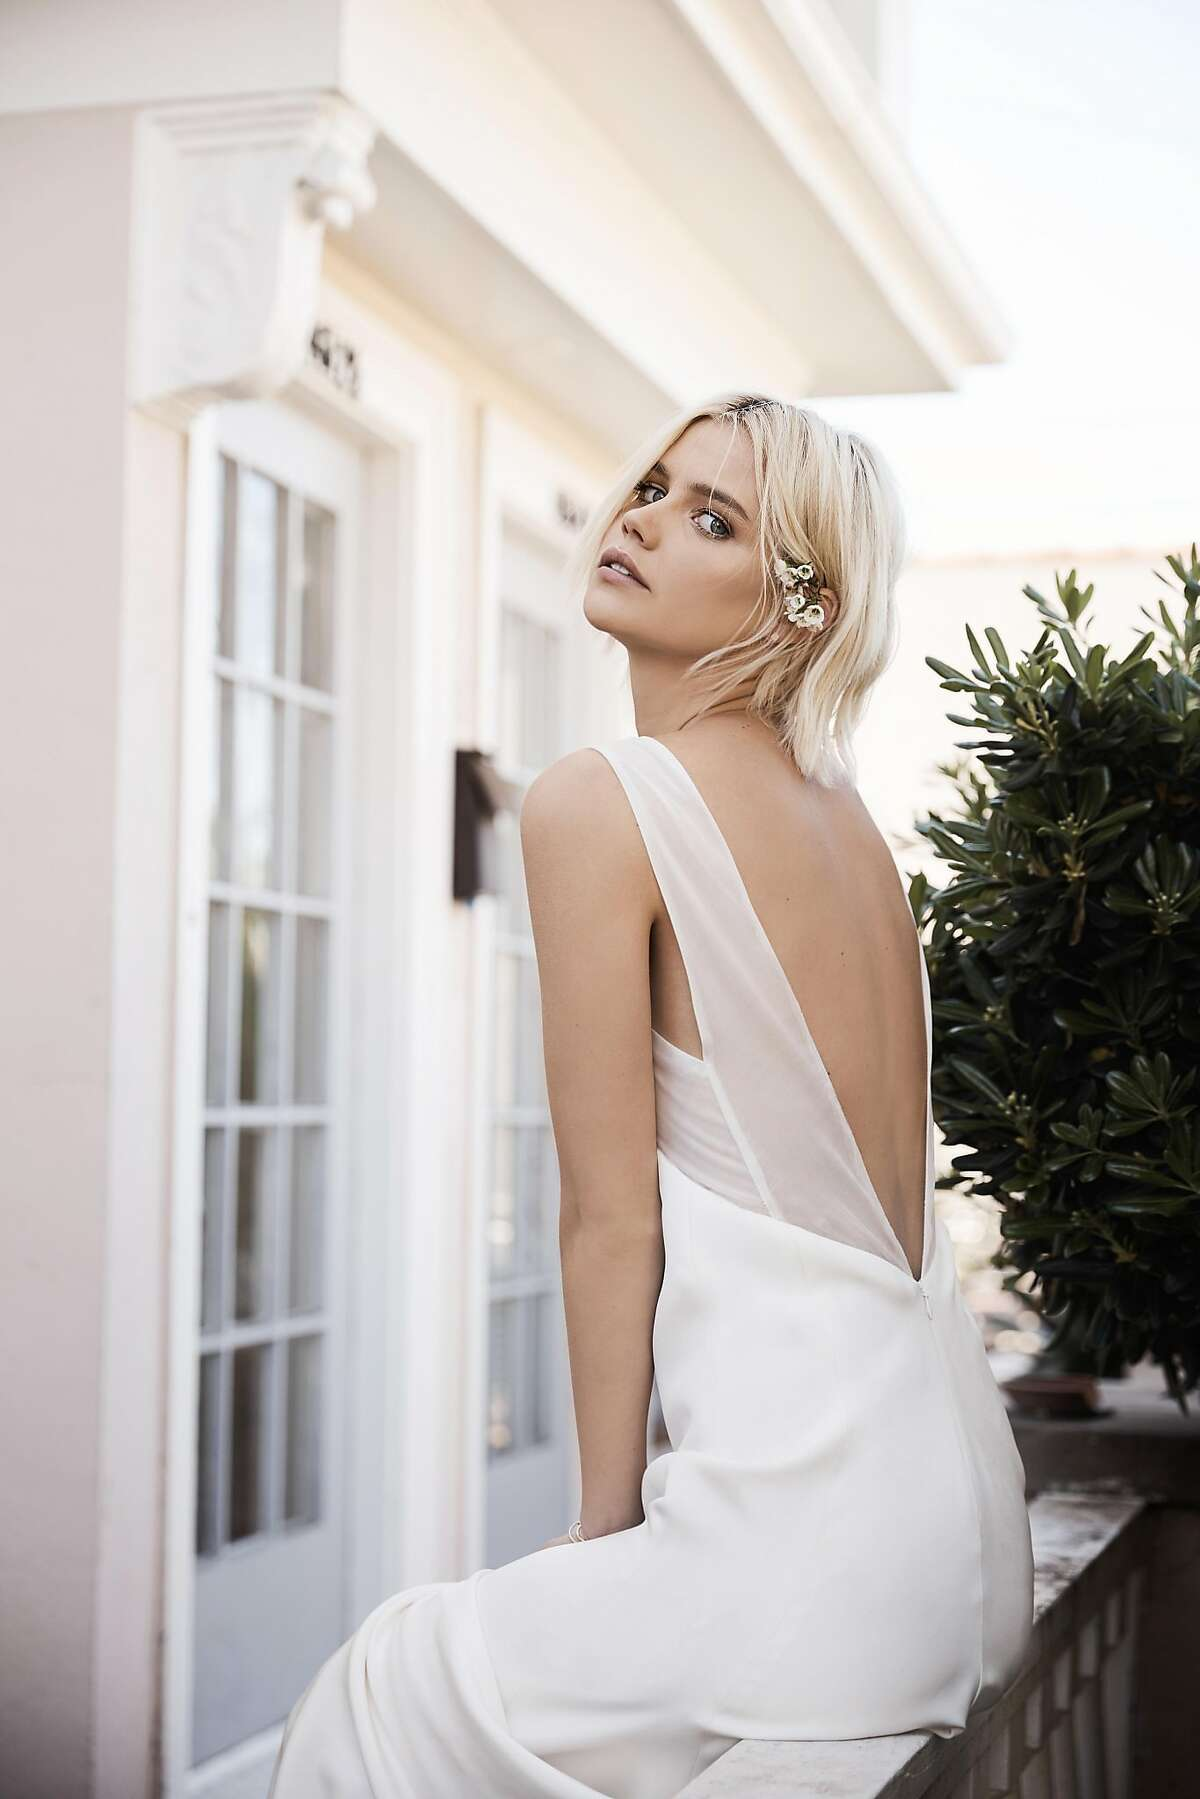 Floravere is a new bridal brand that offers a capsule collection of�thoughtfully constructed luxury wedding gowns, made in the same New York ateliers as runway designer gowns, $4,000.The gowns can be customized and are turned around in 3-6 months, then sent to brides by mail.